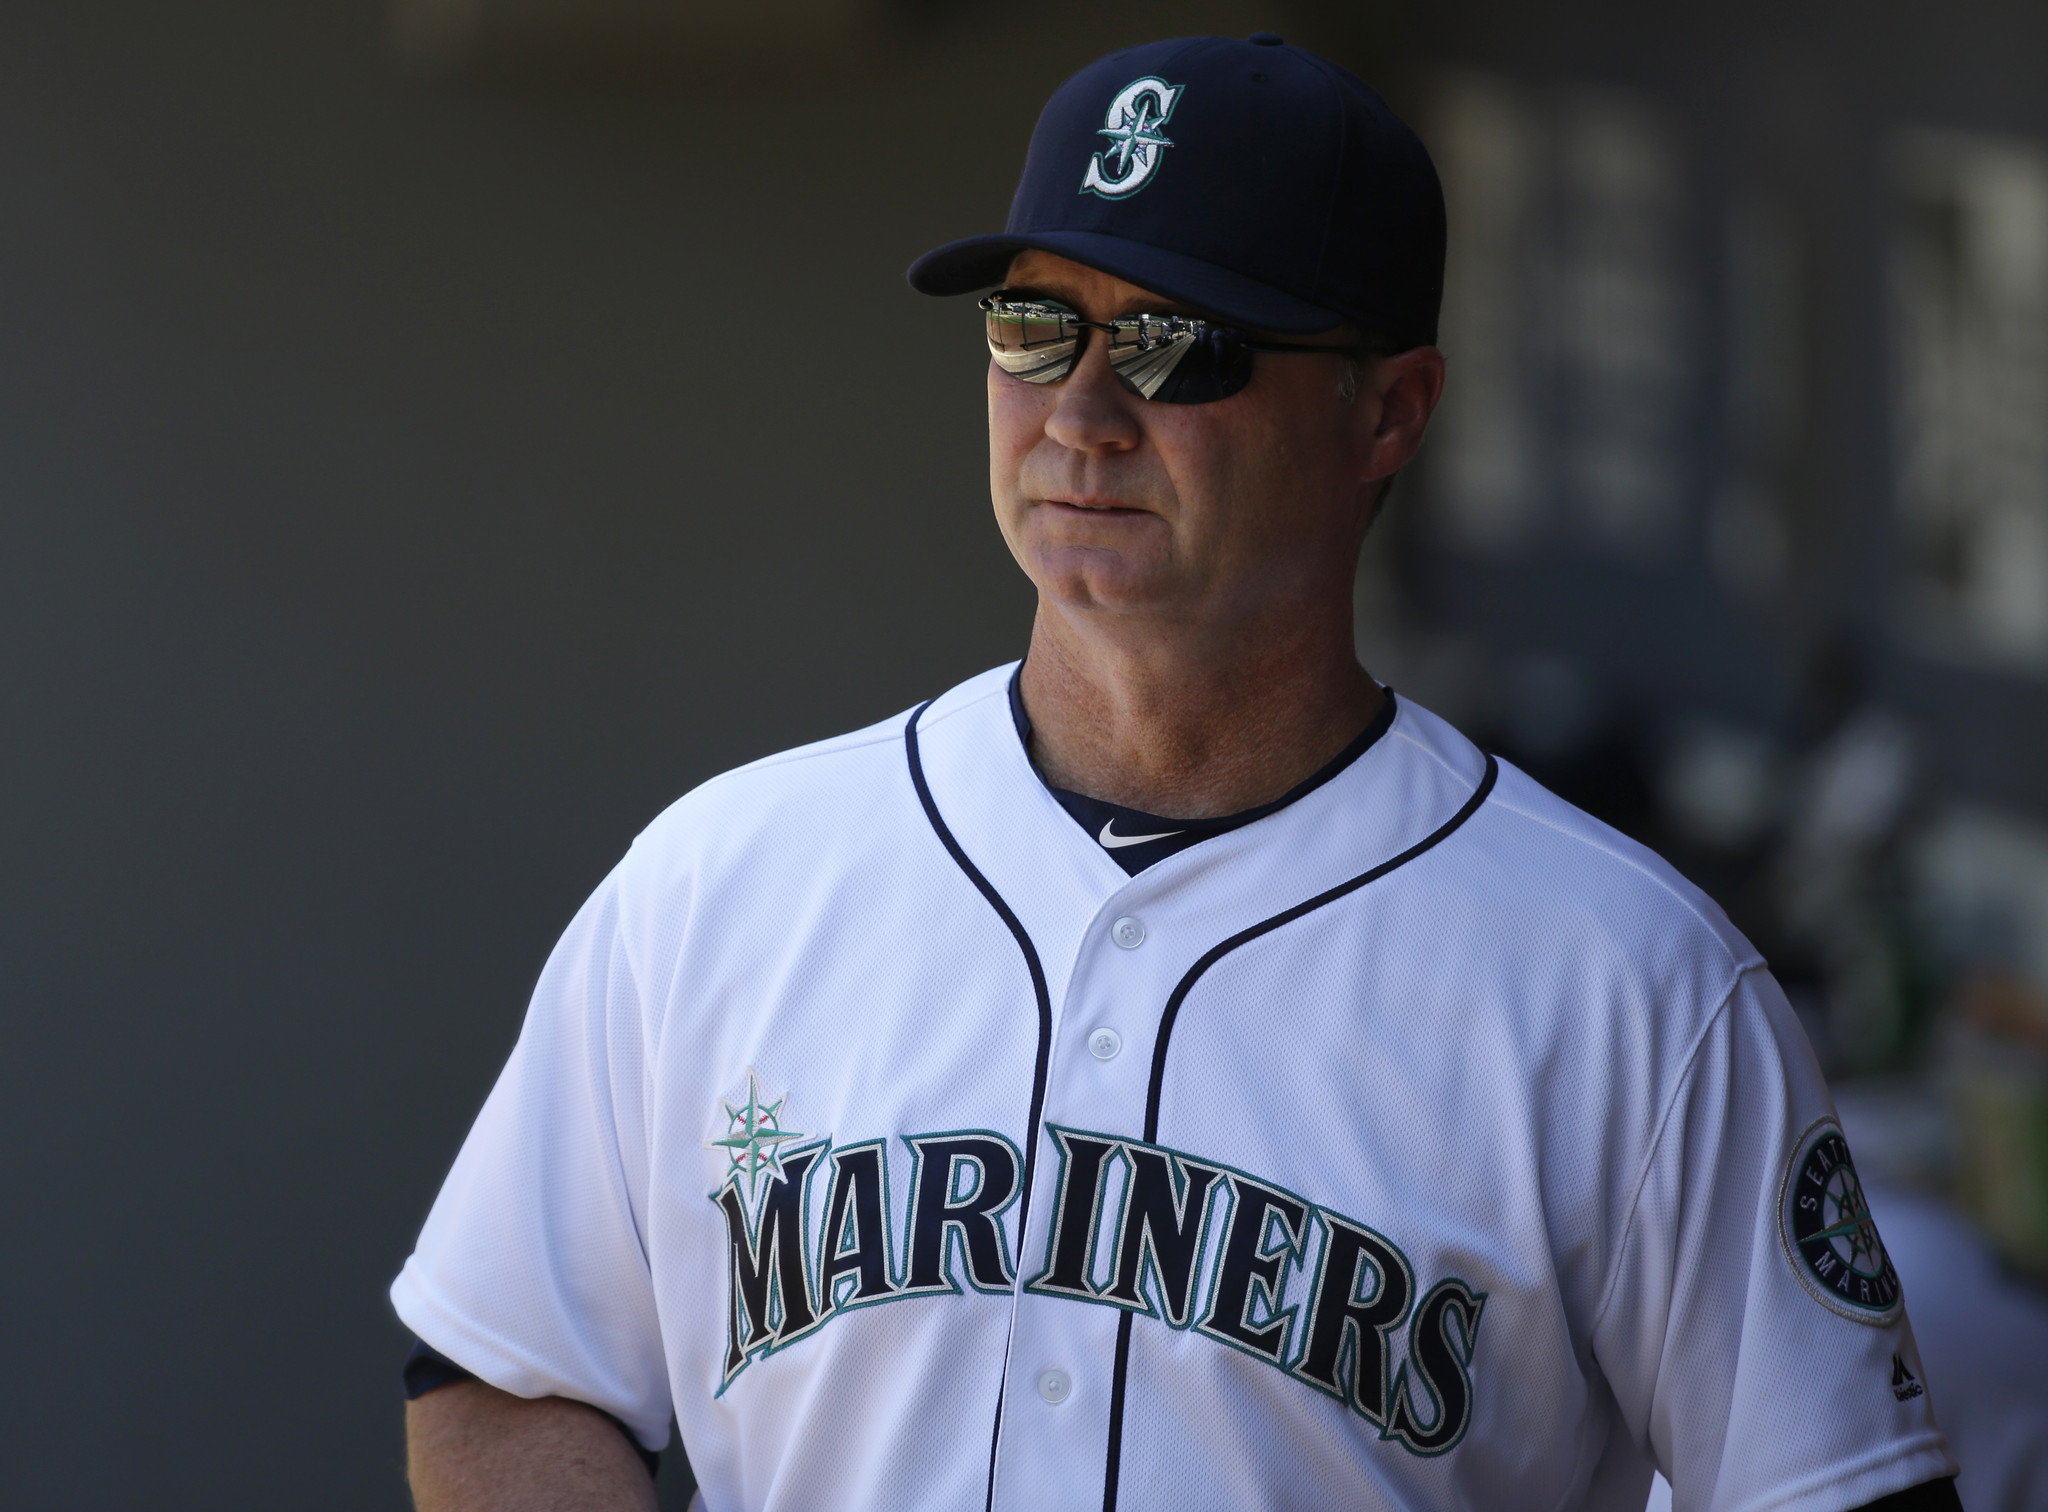 For Mariners and their fans, it's Scott Servais at your service - Chicago Tribune